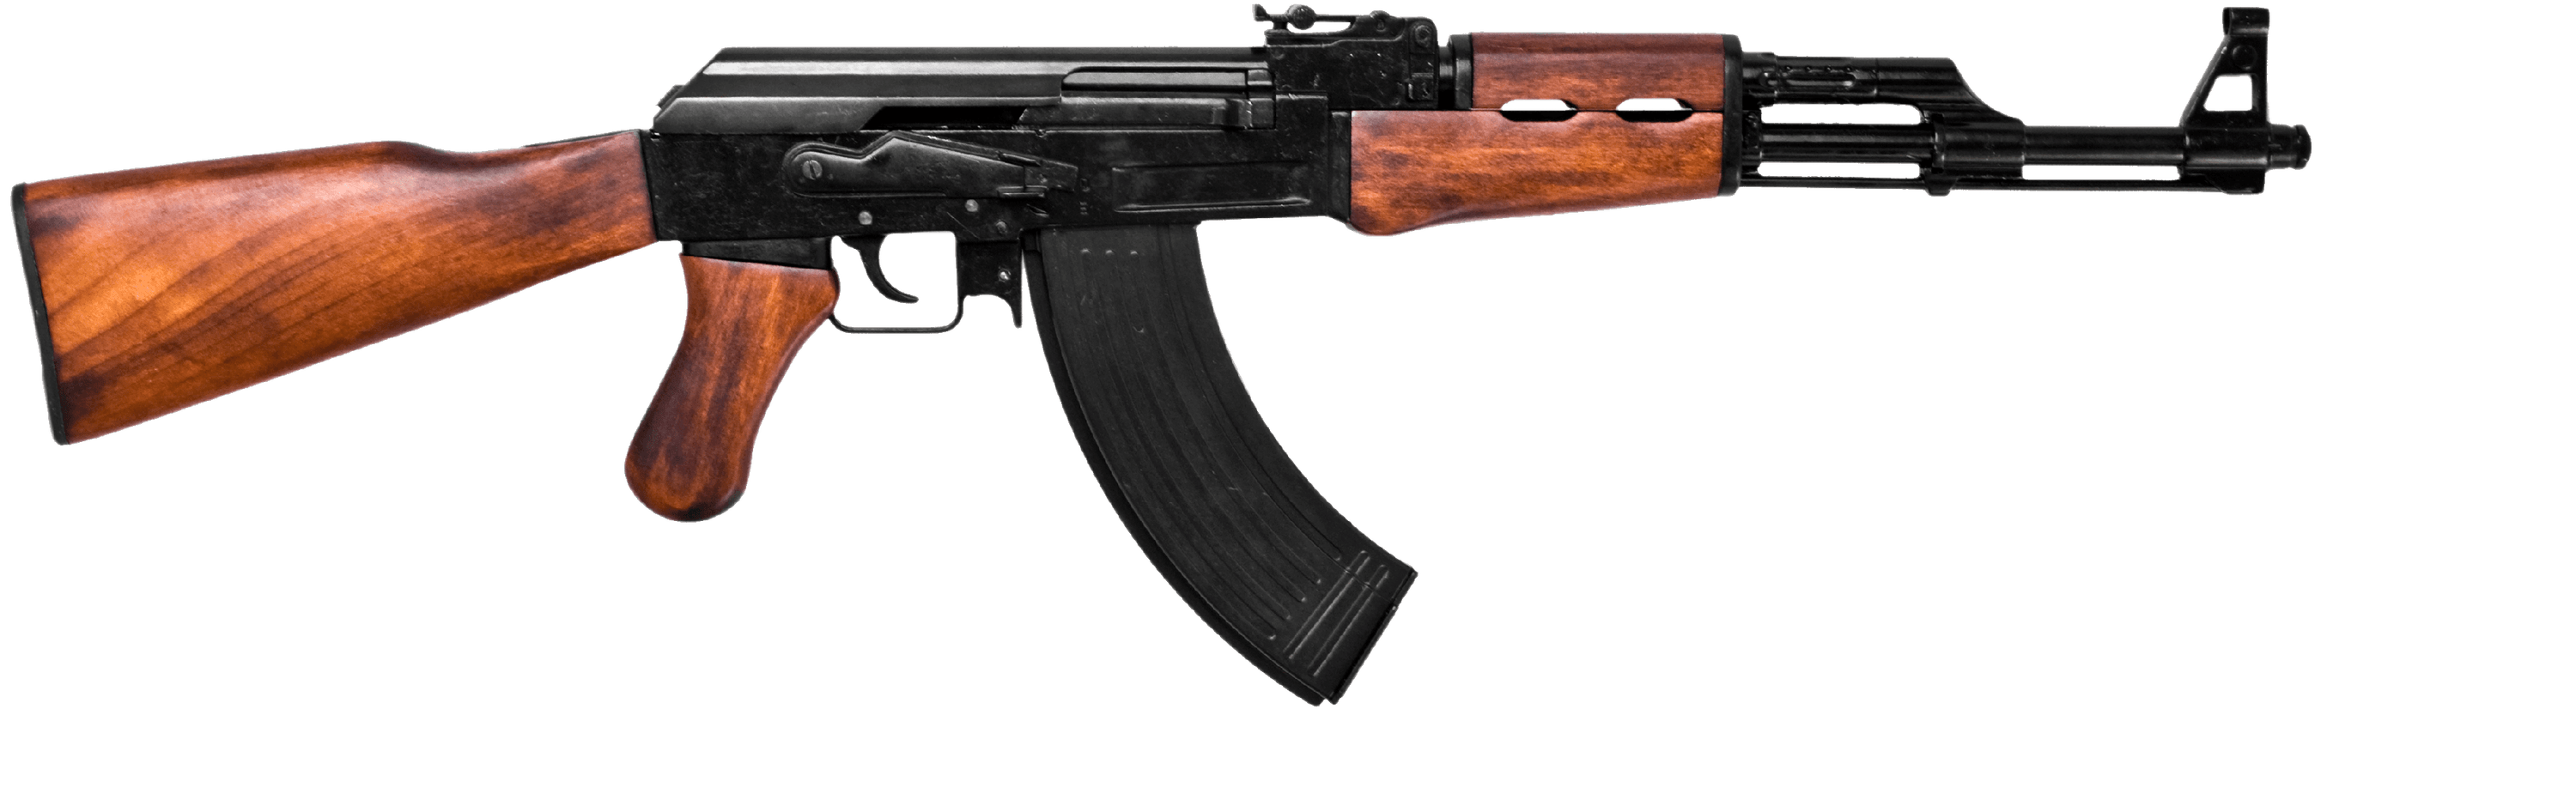 Transparent rifle assult. Ak assault png stickpng